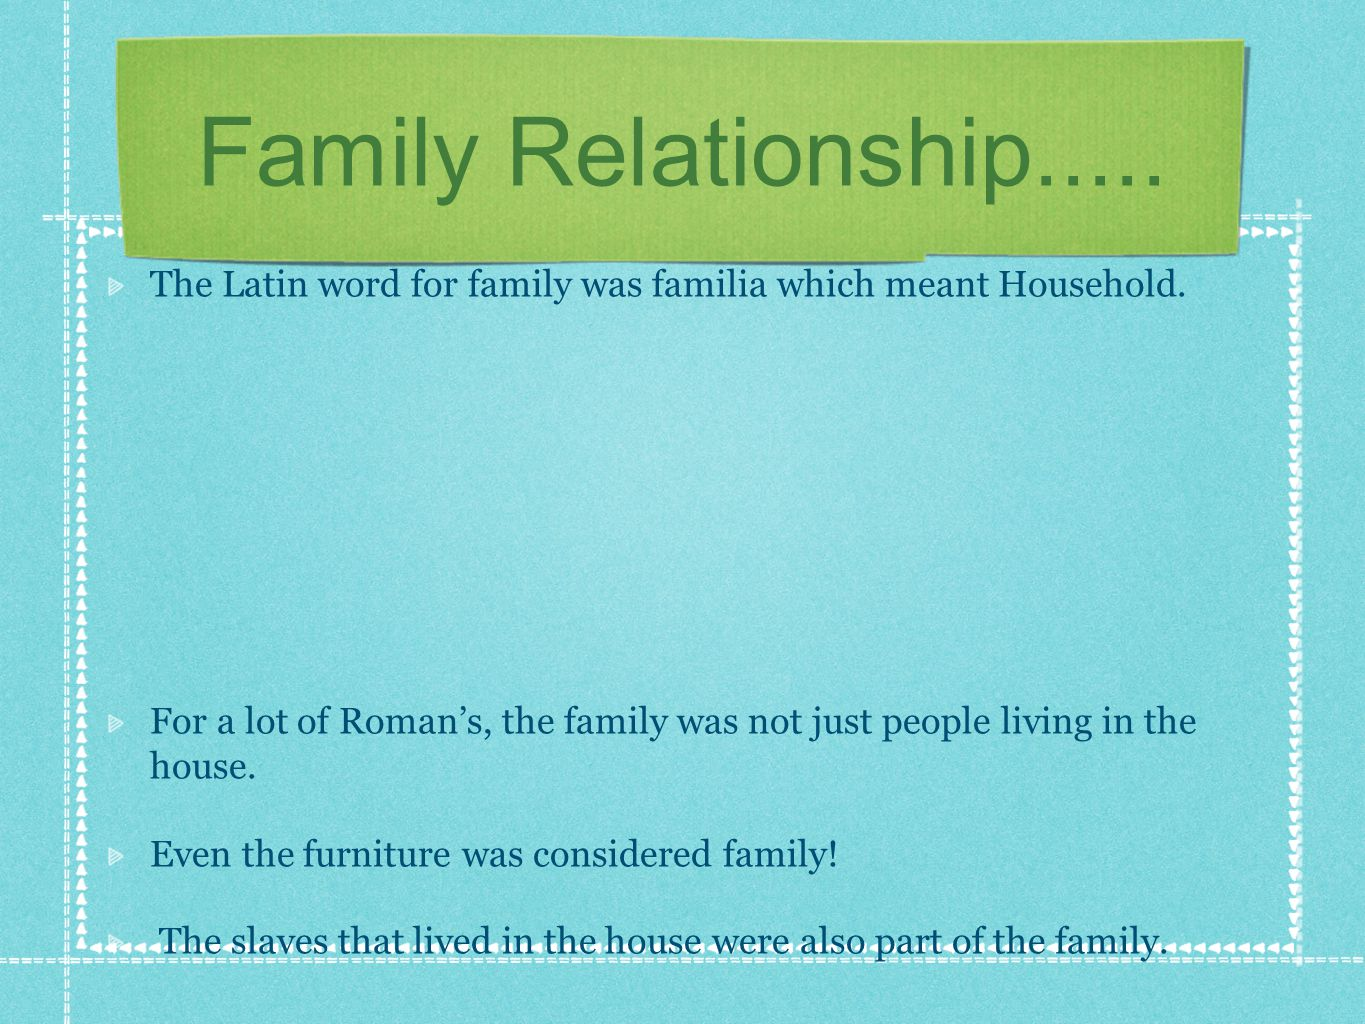 Family Relationship..... The Latin word for family was familia which meant Household. For a lot of Romans, the family was not just people living in th